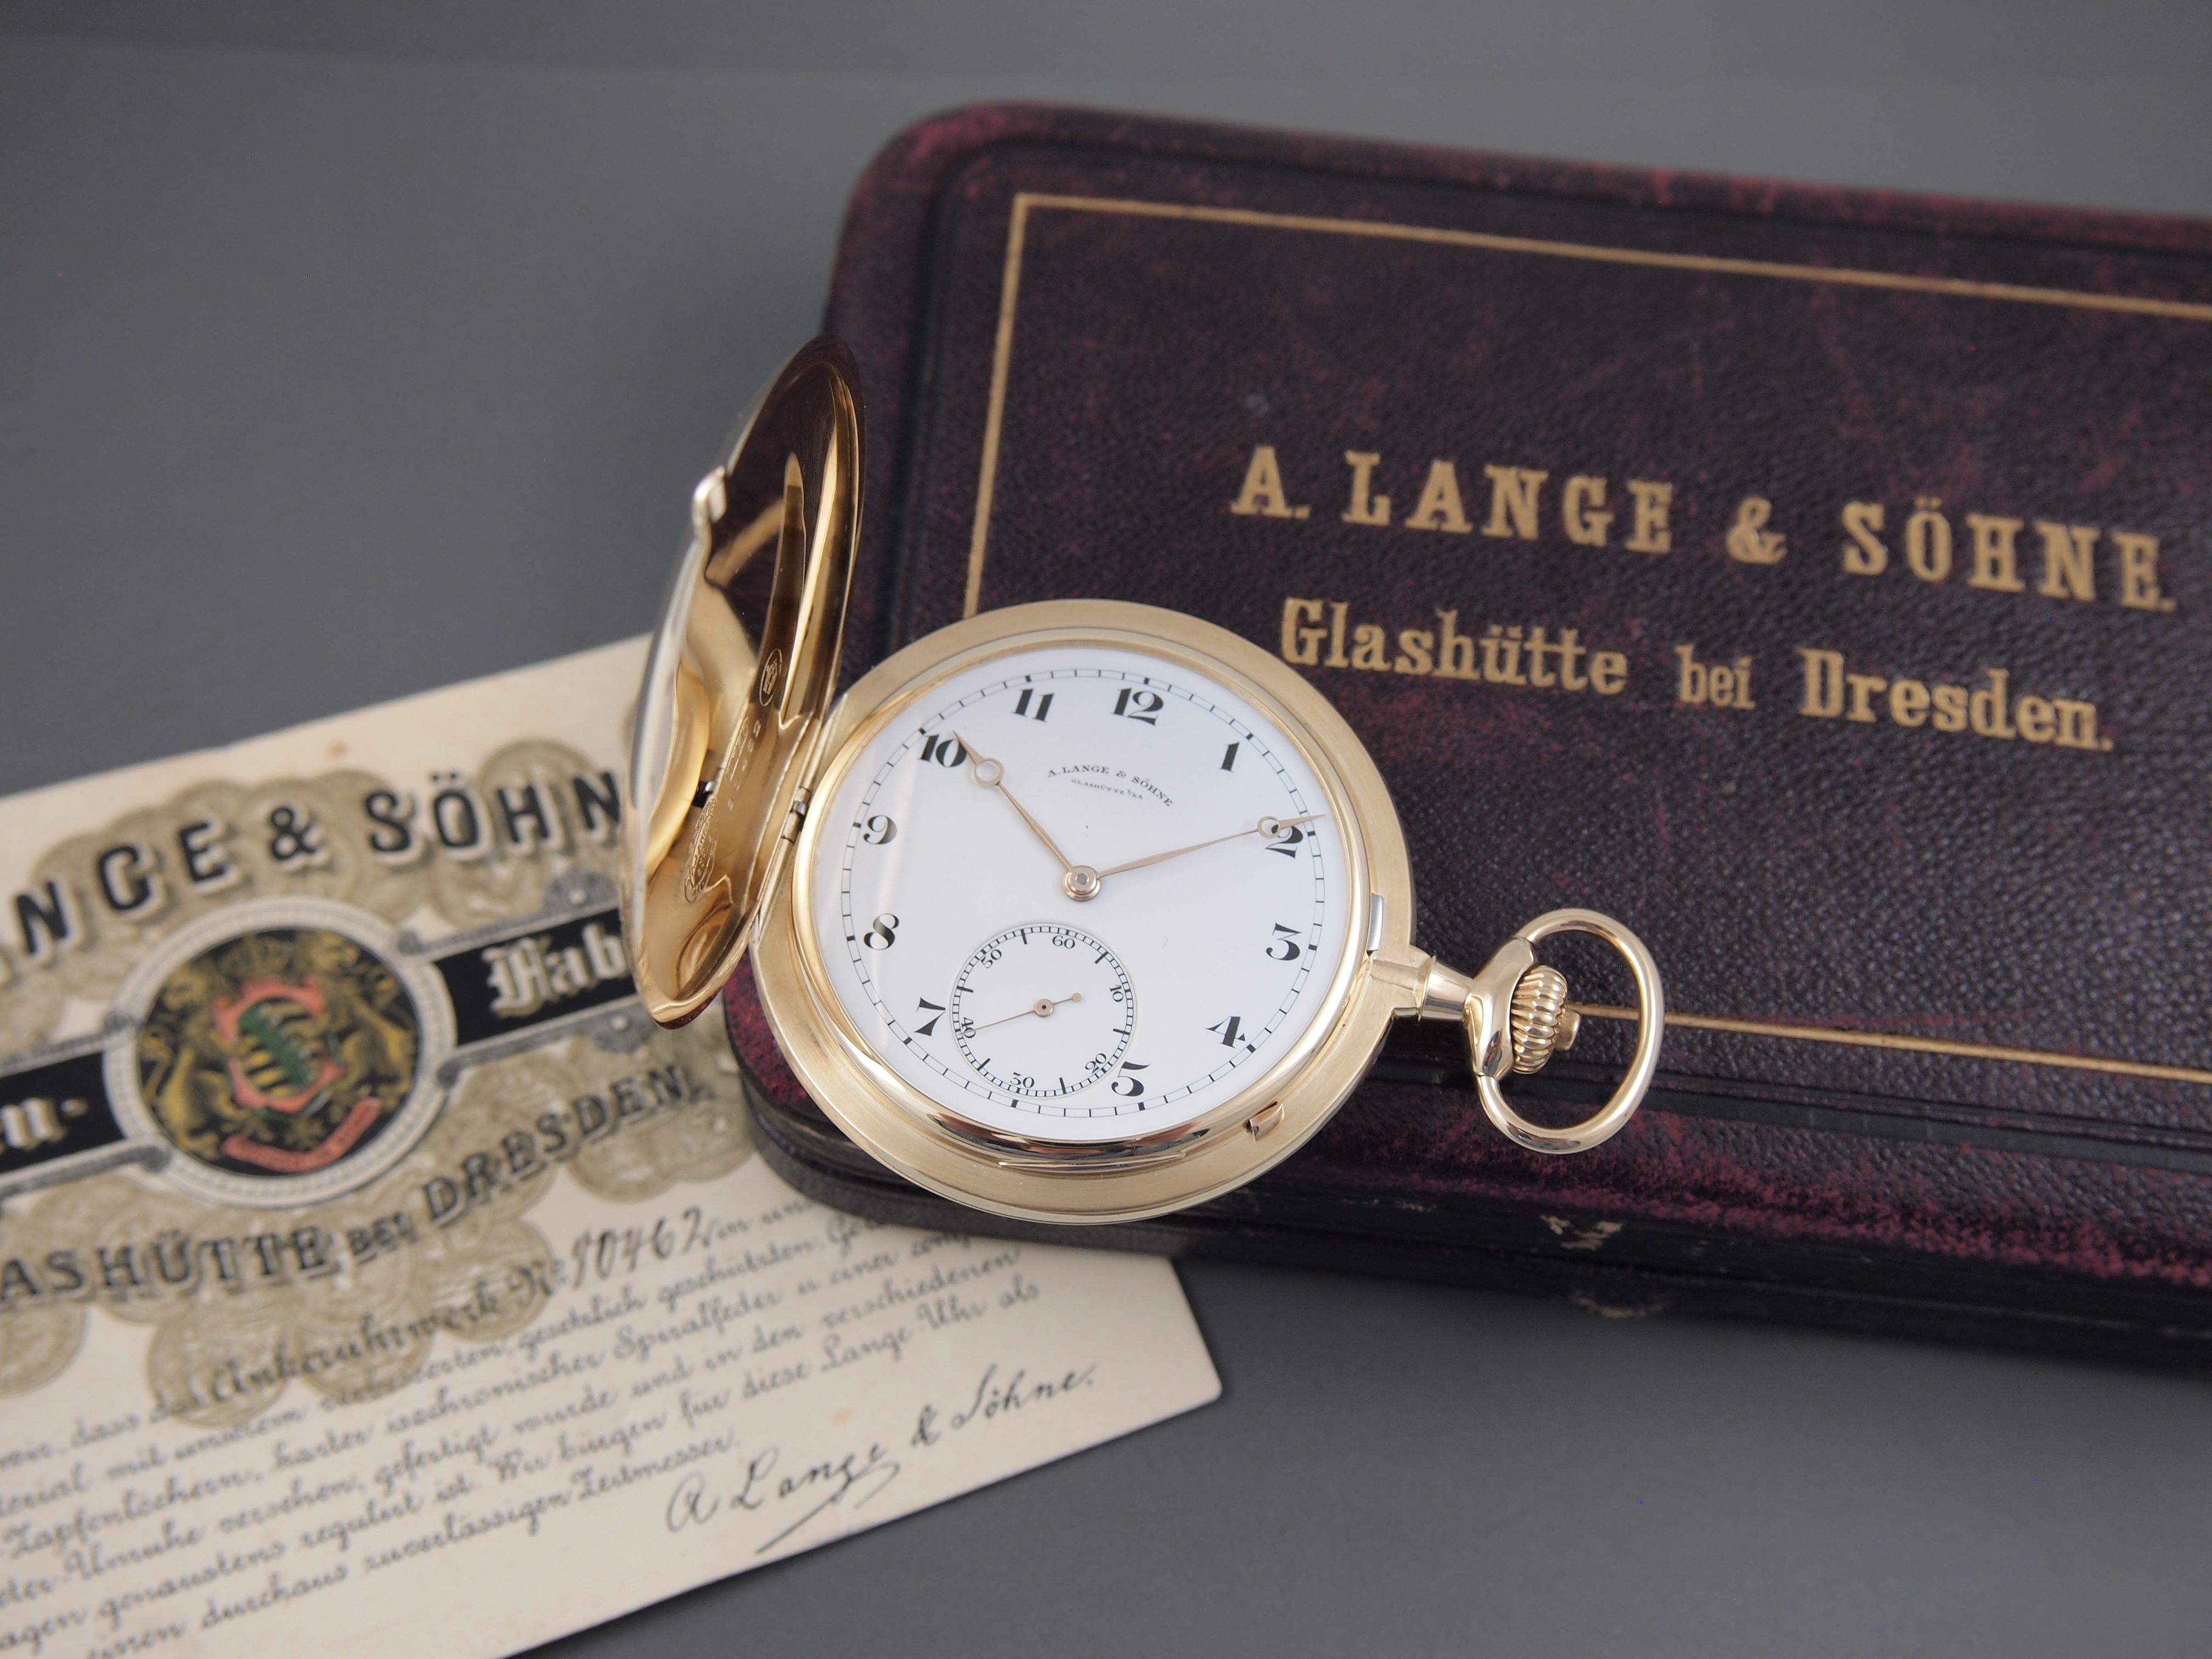 A. Lange & Soehne